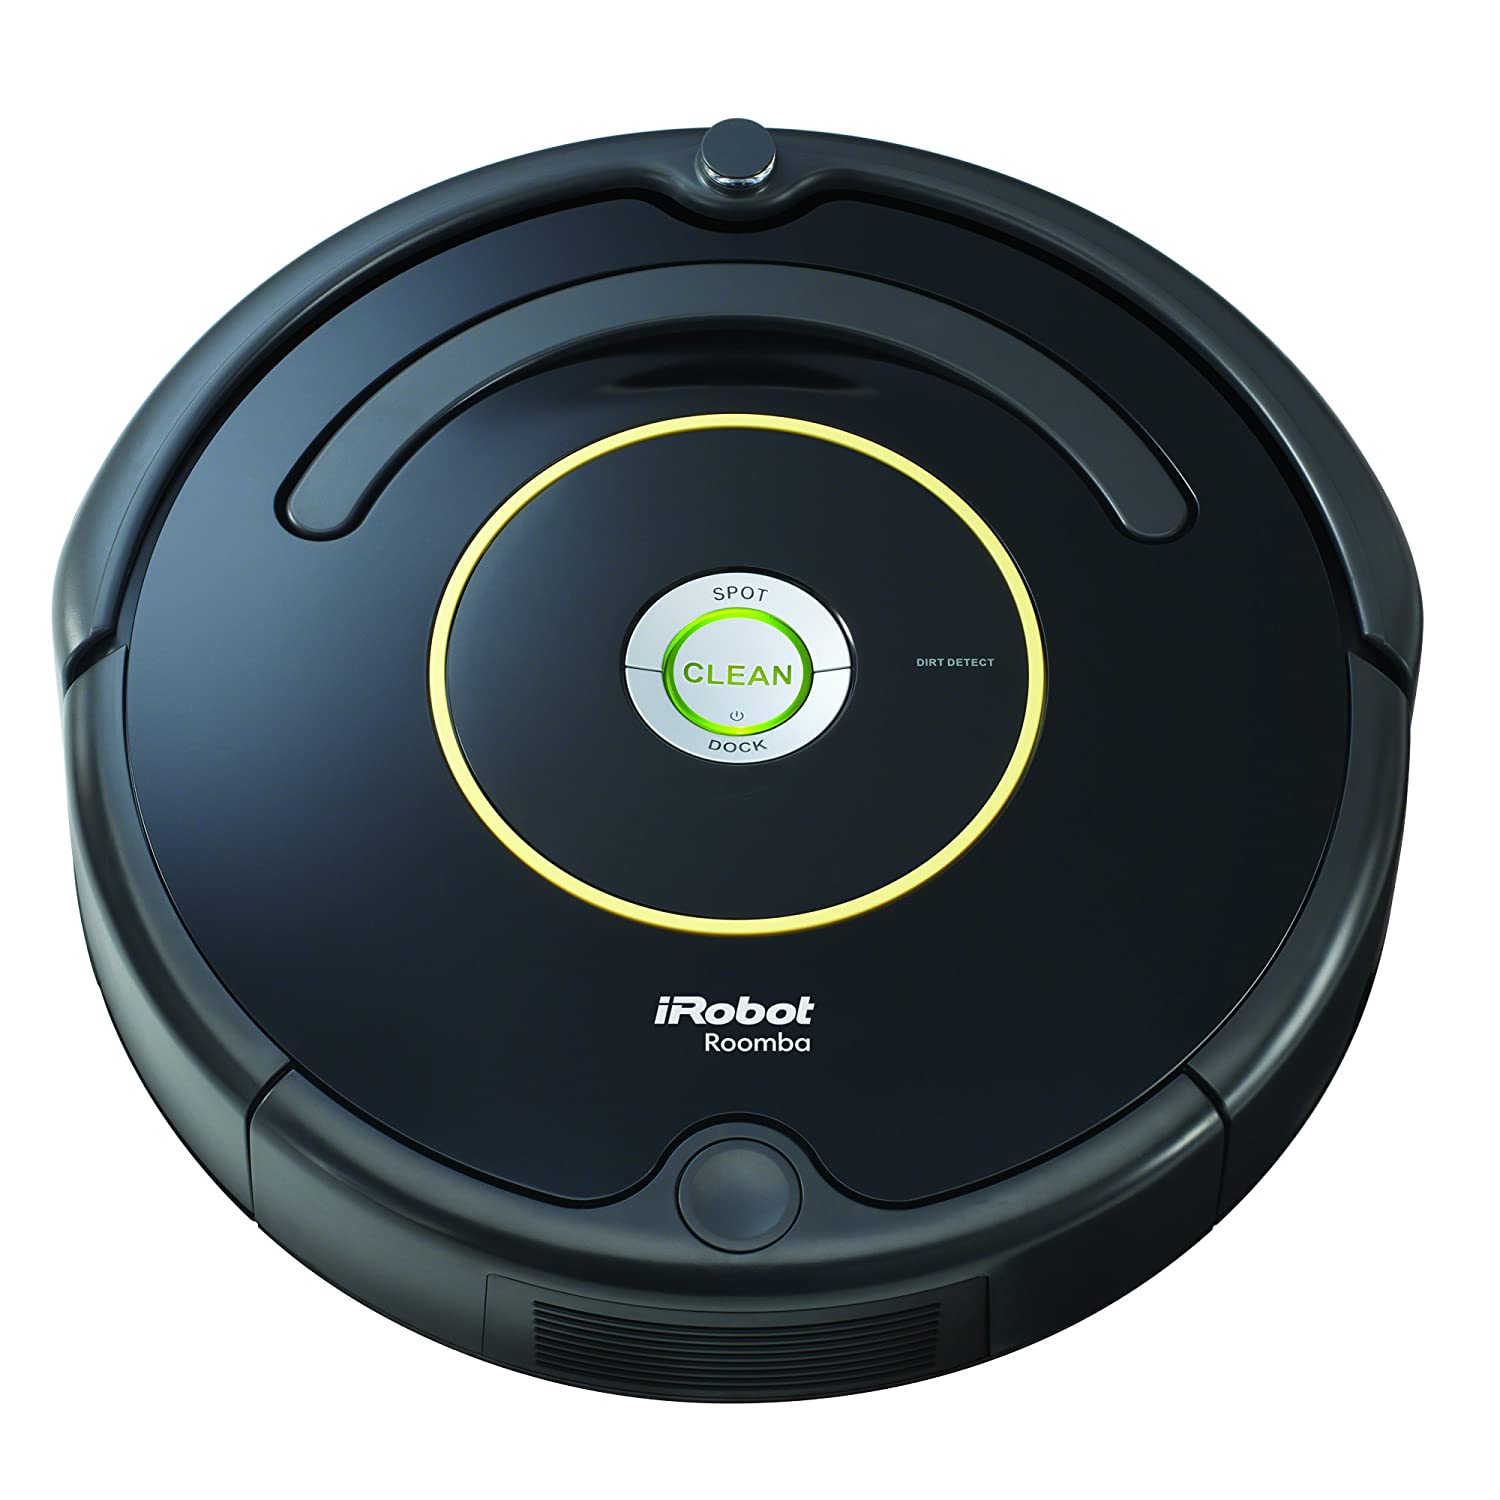 Sensational 13 Best Irobot Roomba Models To Buy Compare Roomba Models Interior Design Ideas Oxytryabchikinfo